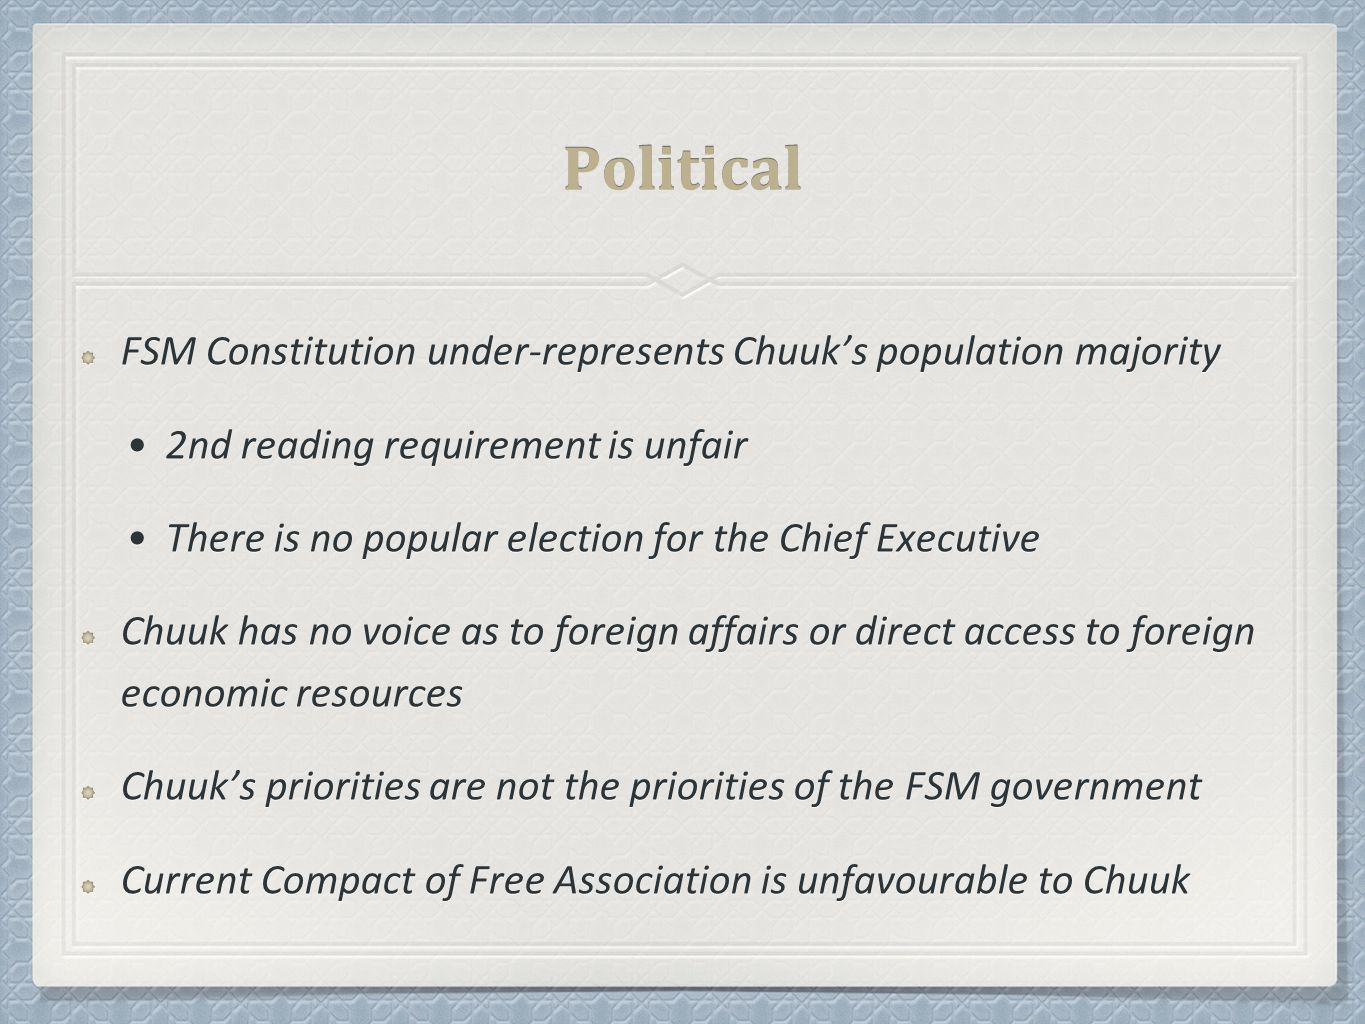 The FSM Constitution under-represents Chuuk's population majority through the requirement of a second reading, which is based upon one vote per State.